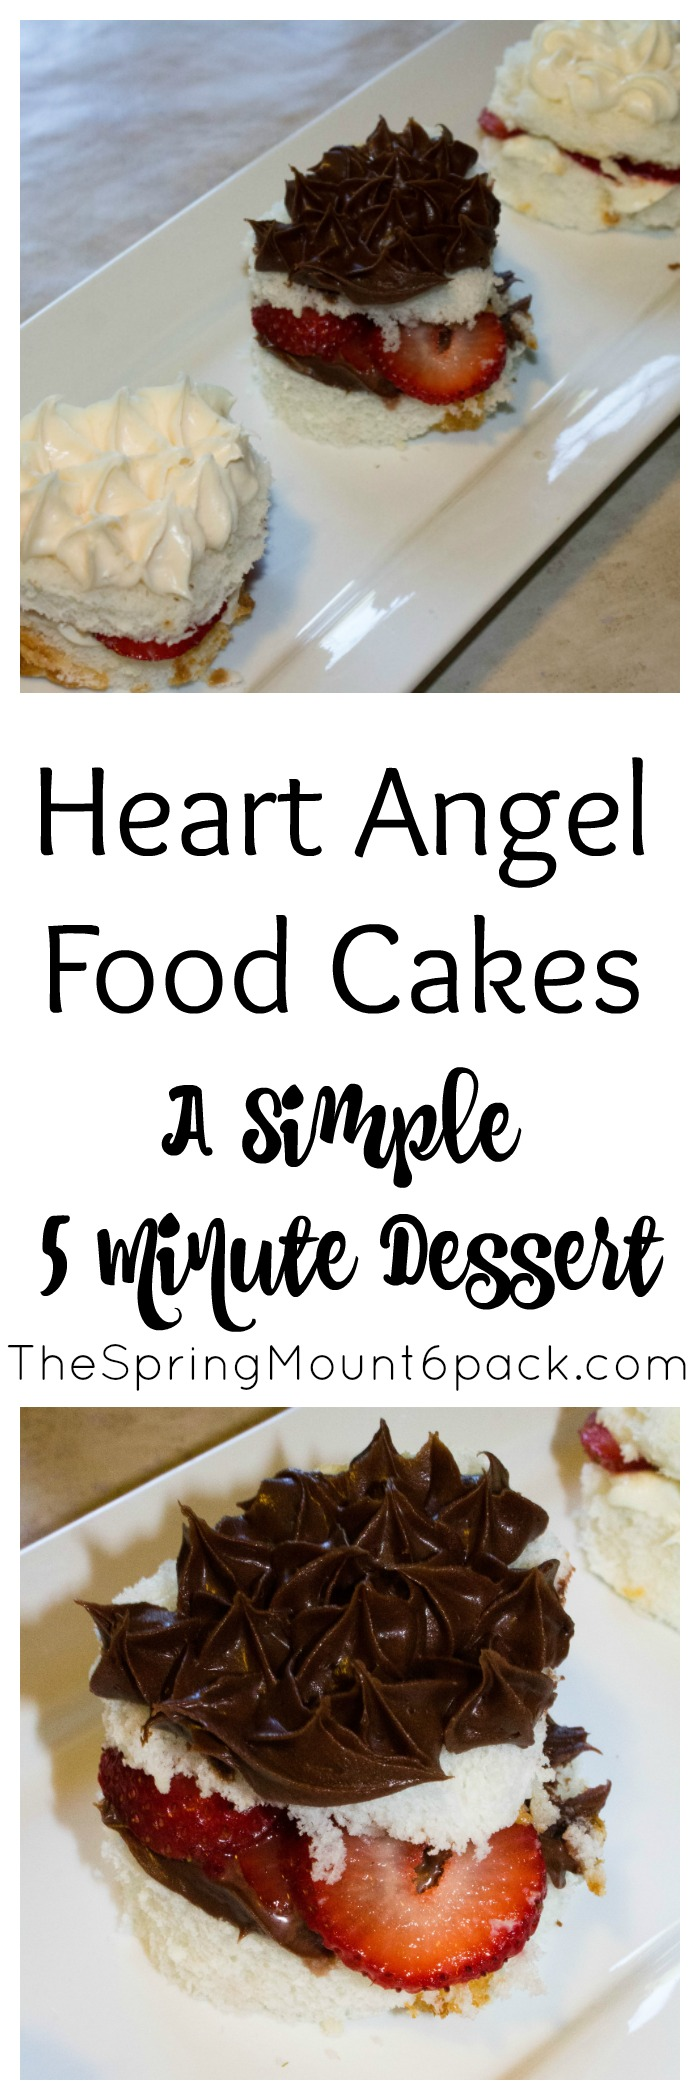 Heart Angel Food Cakes are a simple 5 minute dessert that only takes 3 ingredients. Perfect for week night dessert.